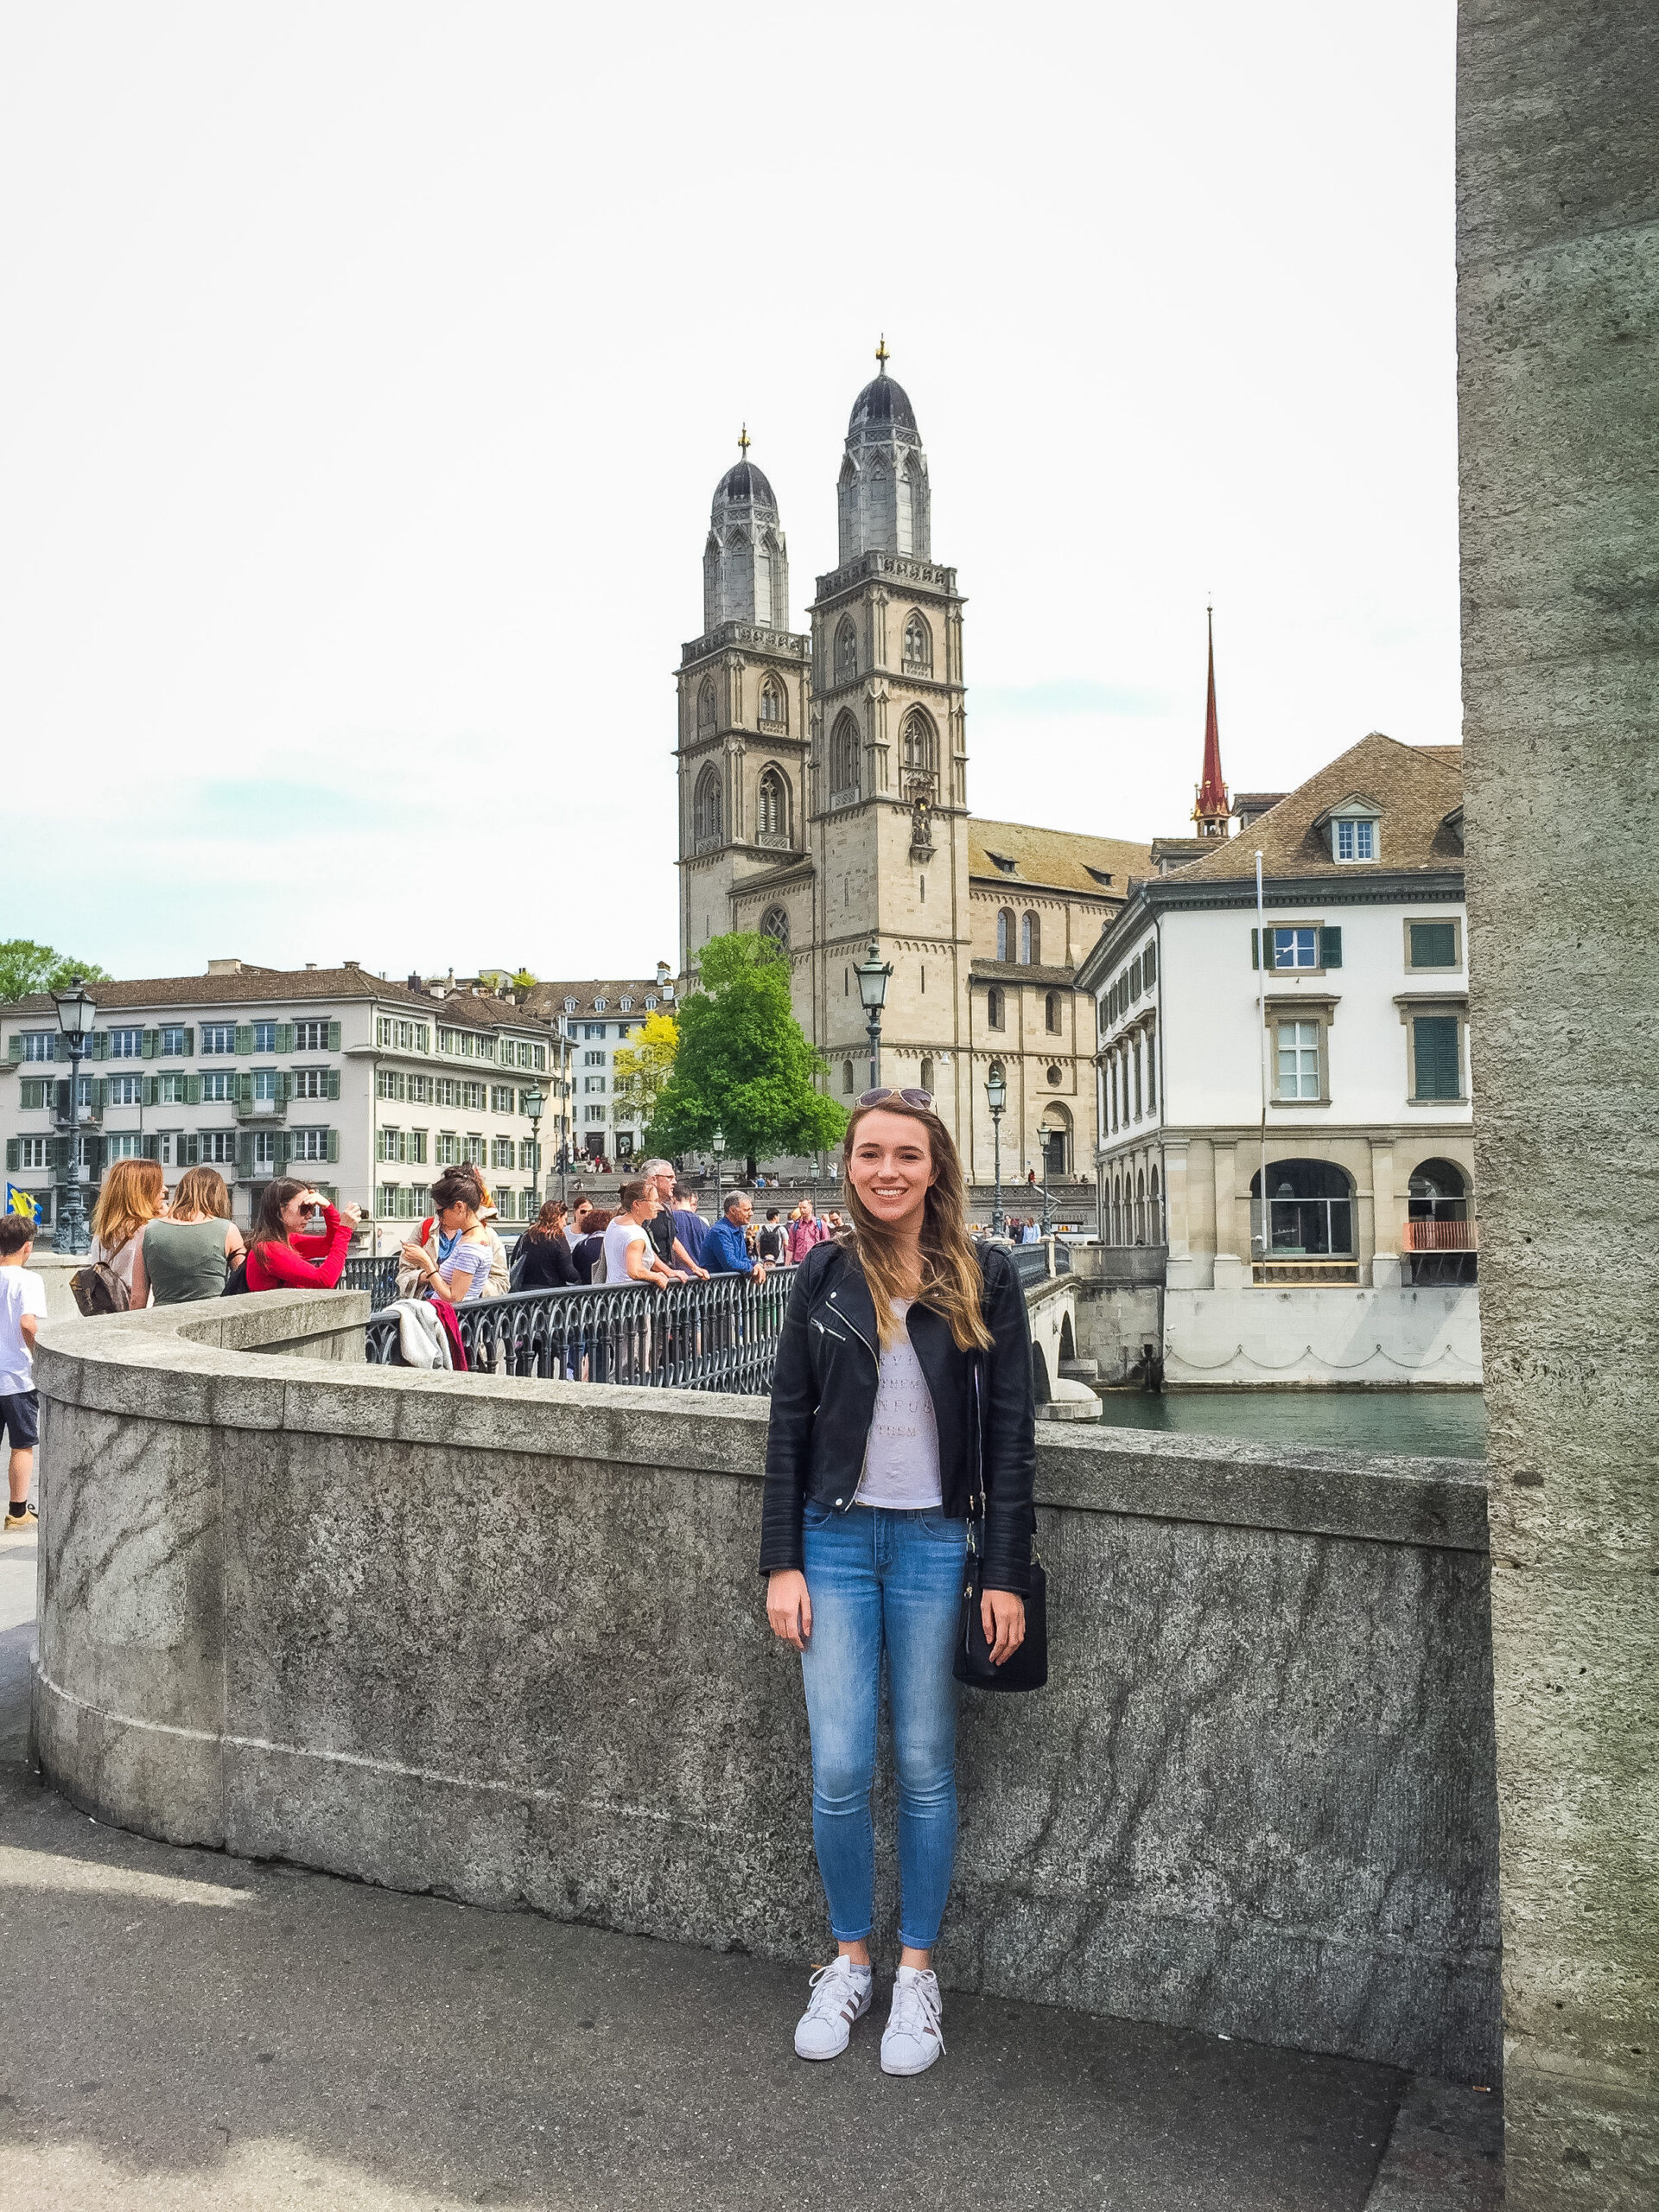 Grossmünster is a highlight when visiting Zürich, Switzerland